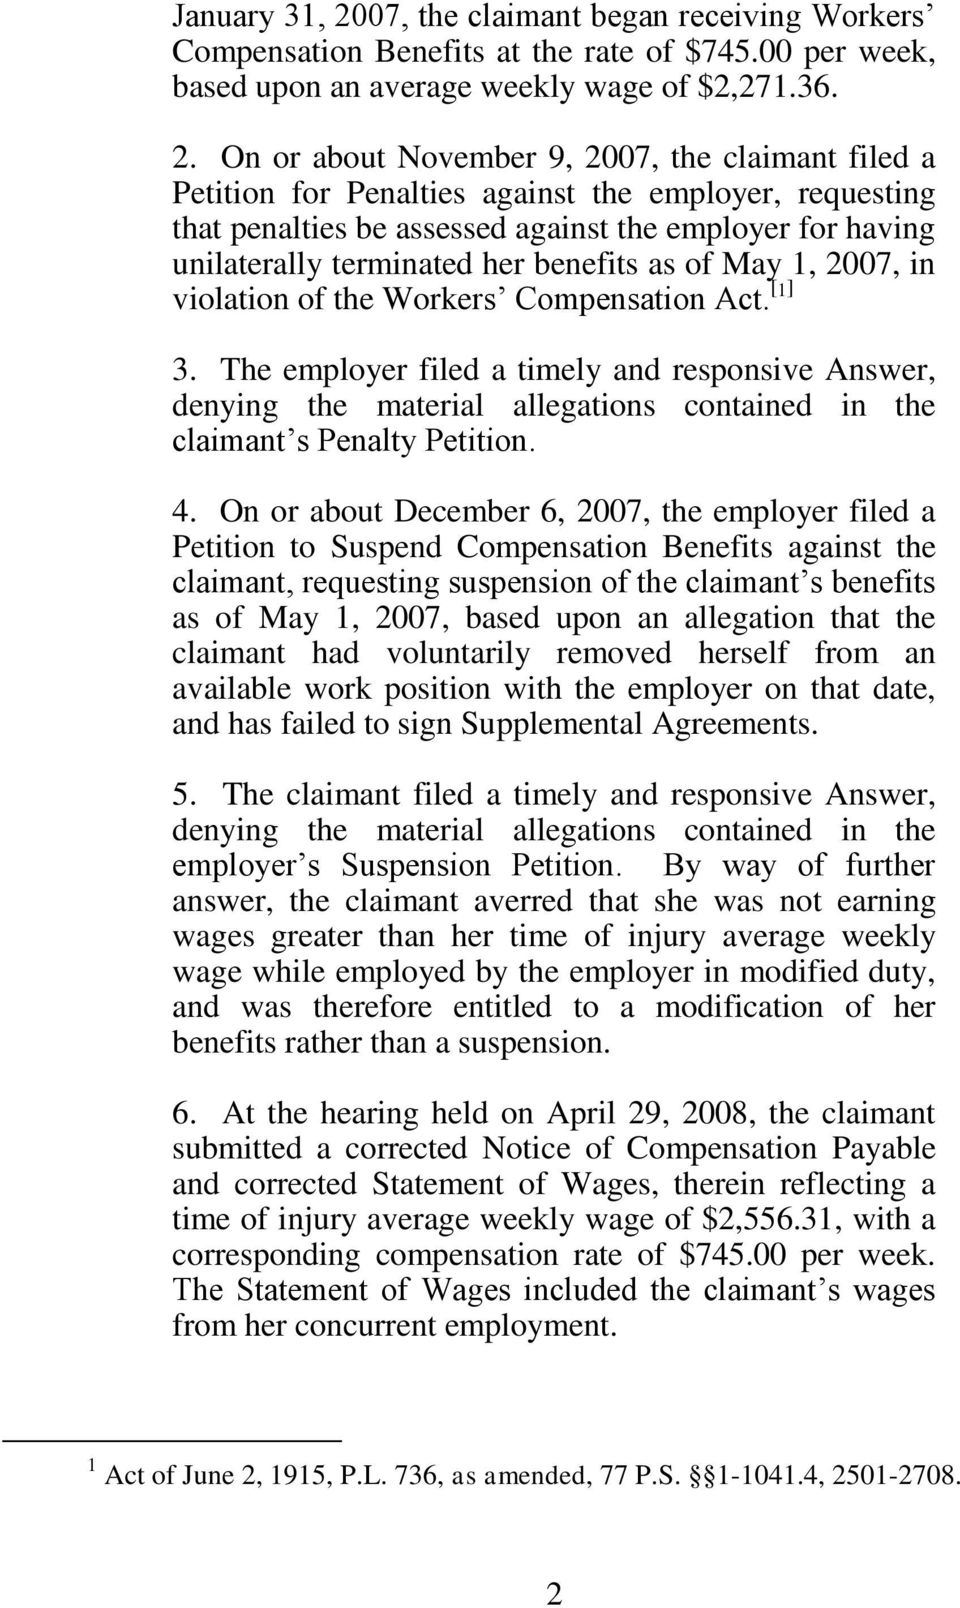 On or about November 9, 2007, the claimant filed a Petition for Penalties against the employer, requesting that penalties be assessed against the employer for having unilaterally terminated her